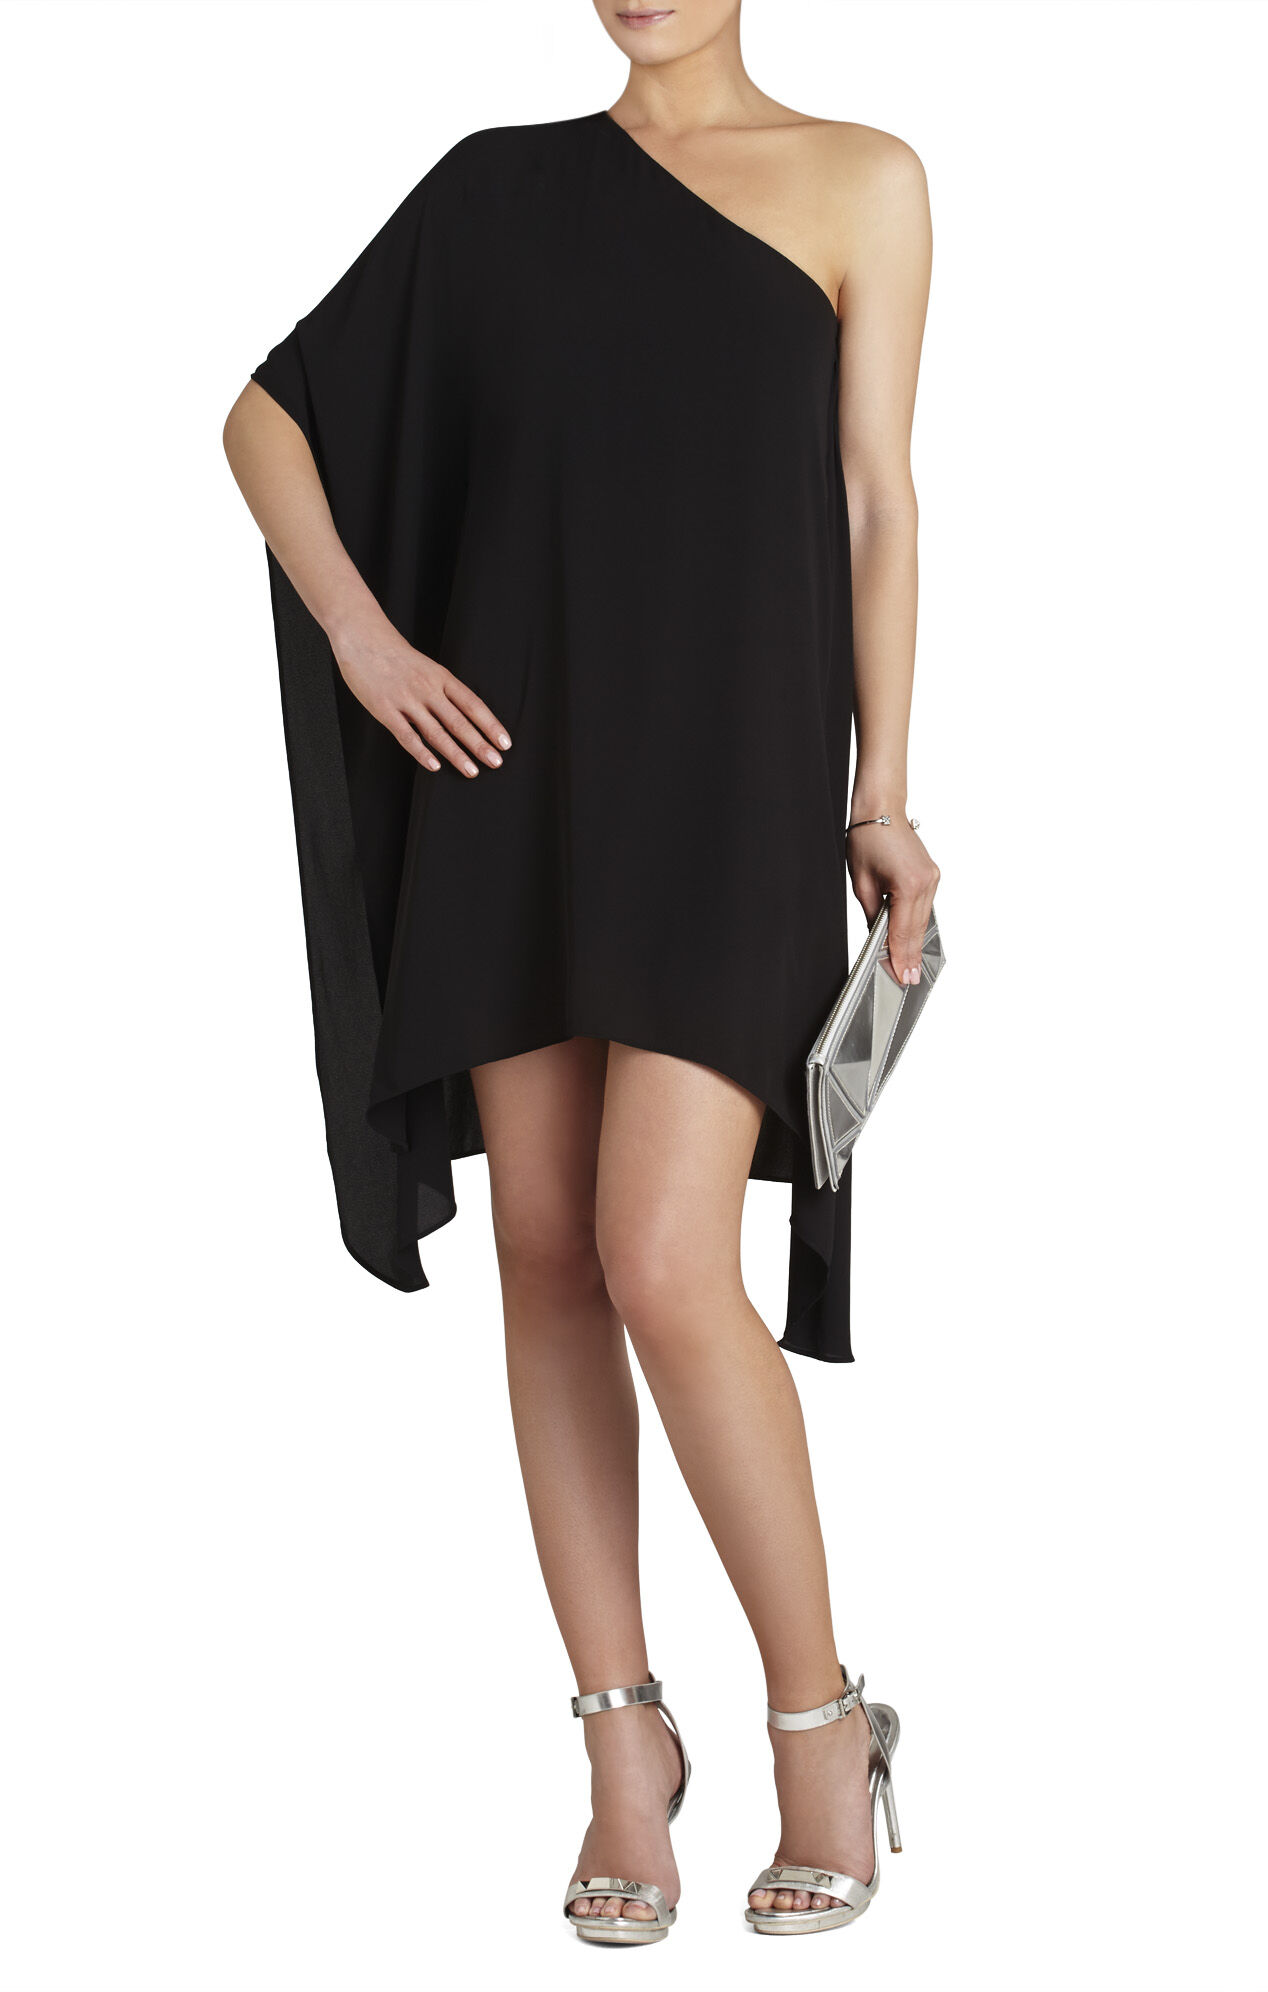 BCBGMAXAZRIA Alana Side-Draped Dress | BCBG.com